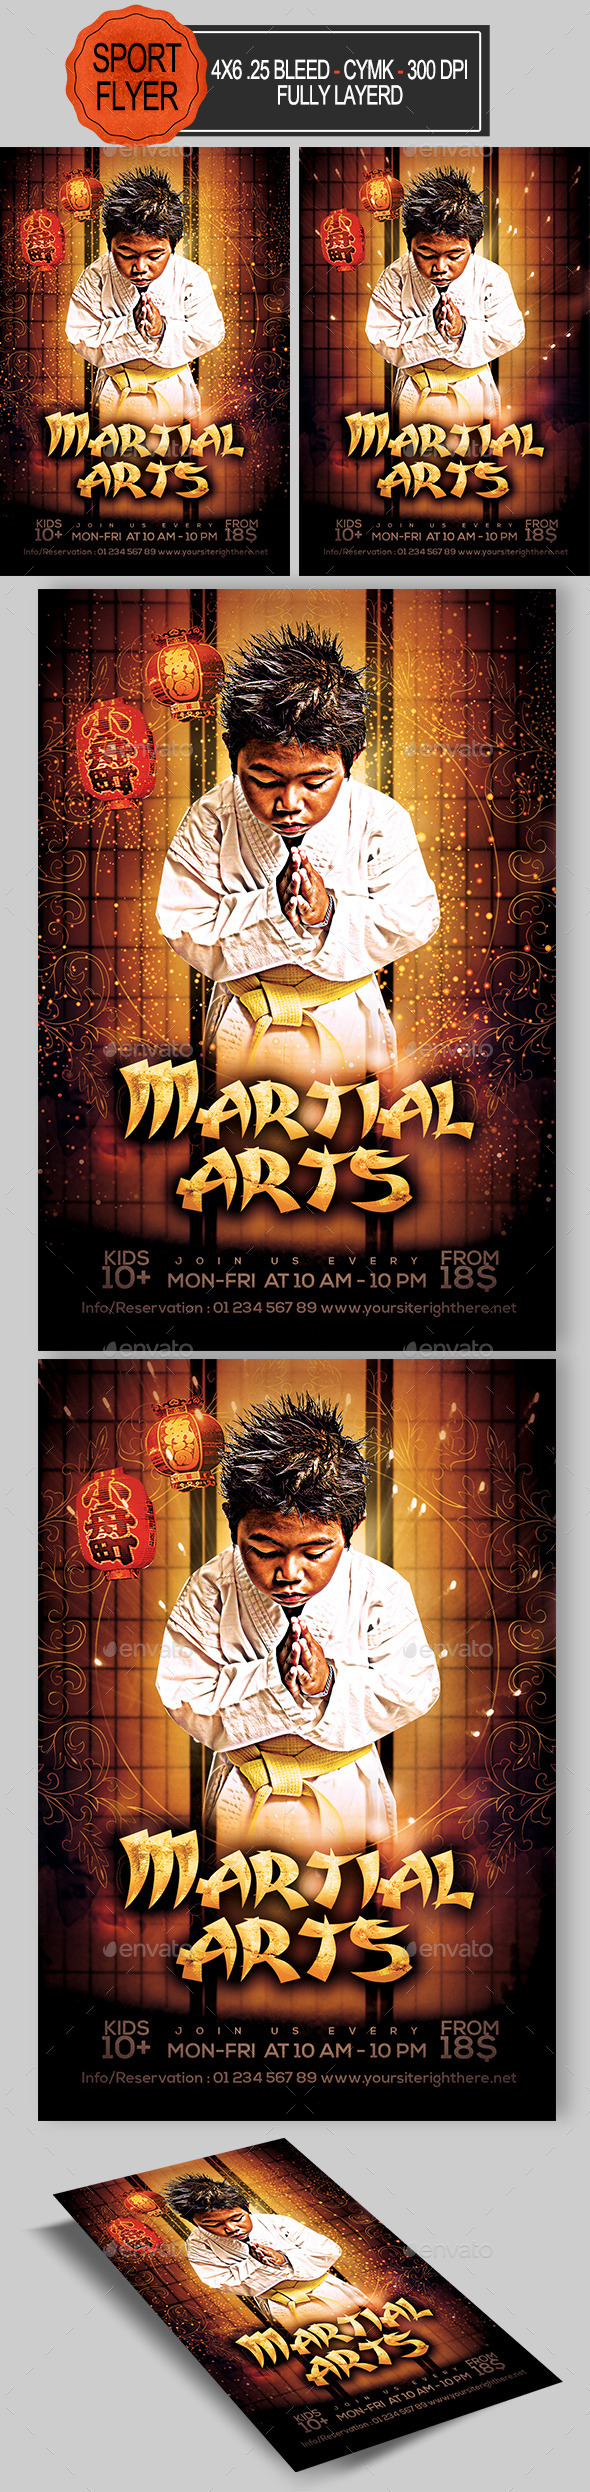 Martial Arts Flyer - Sports Events